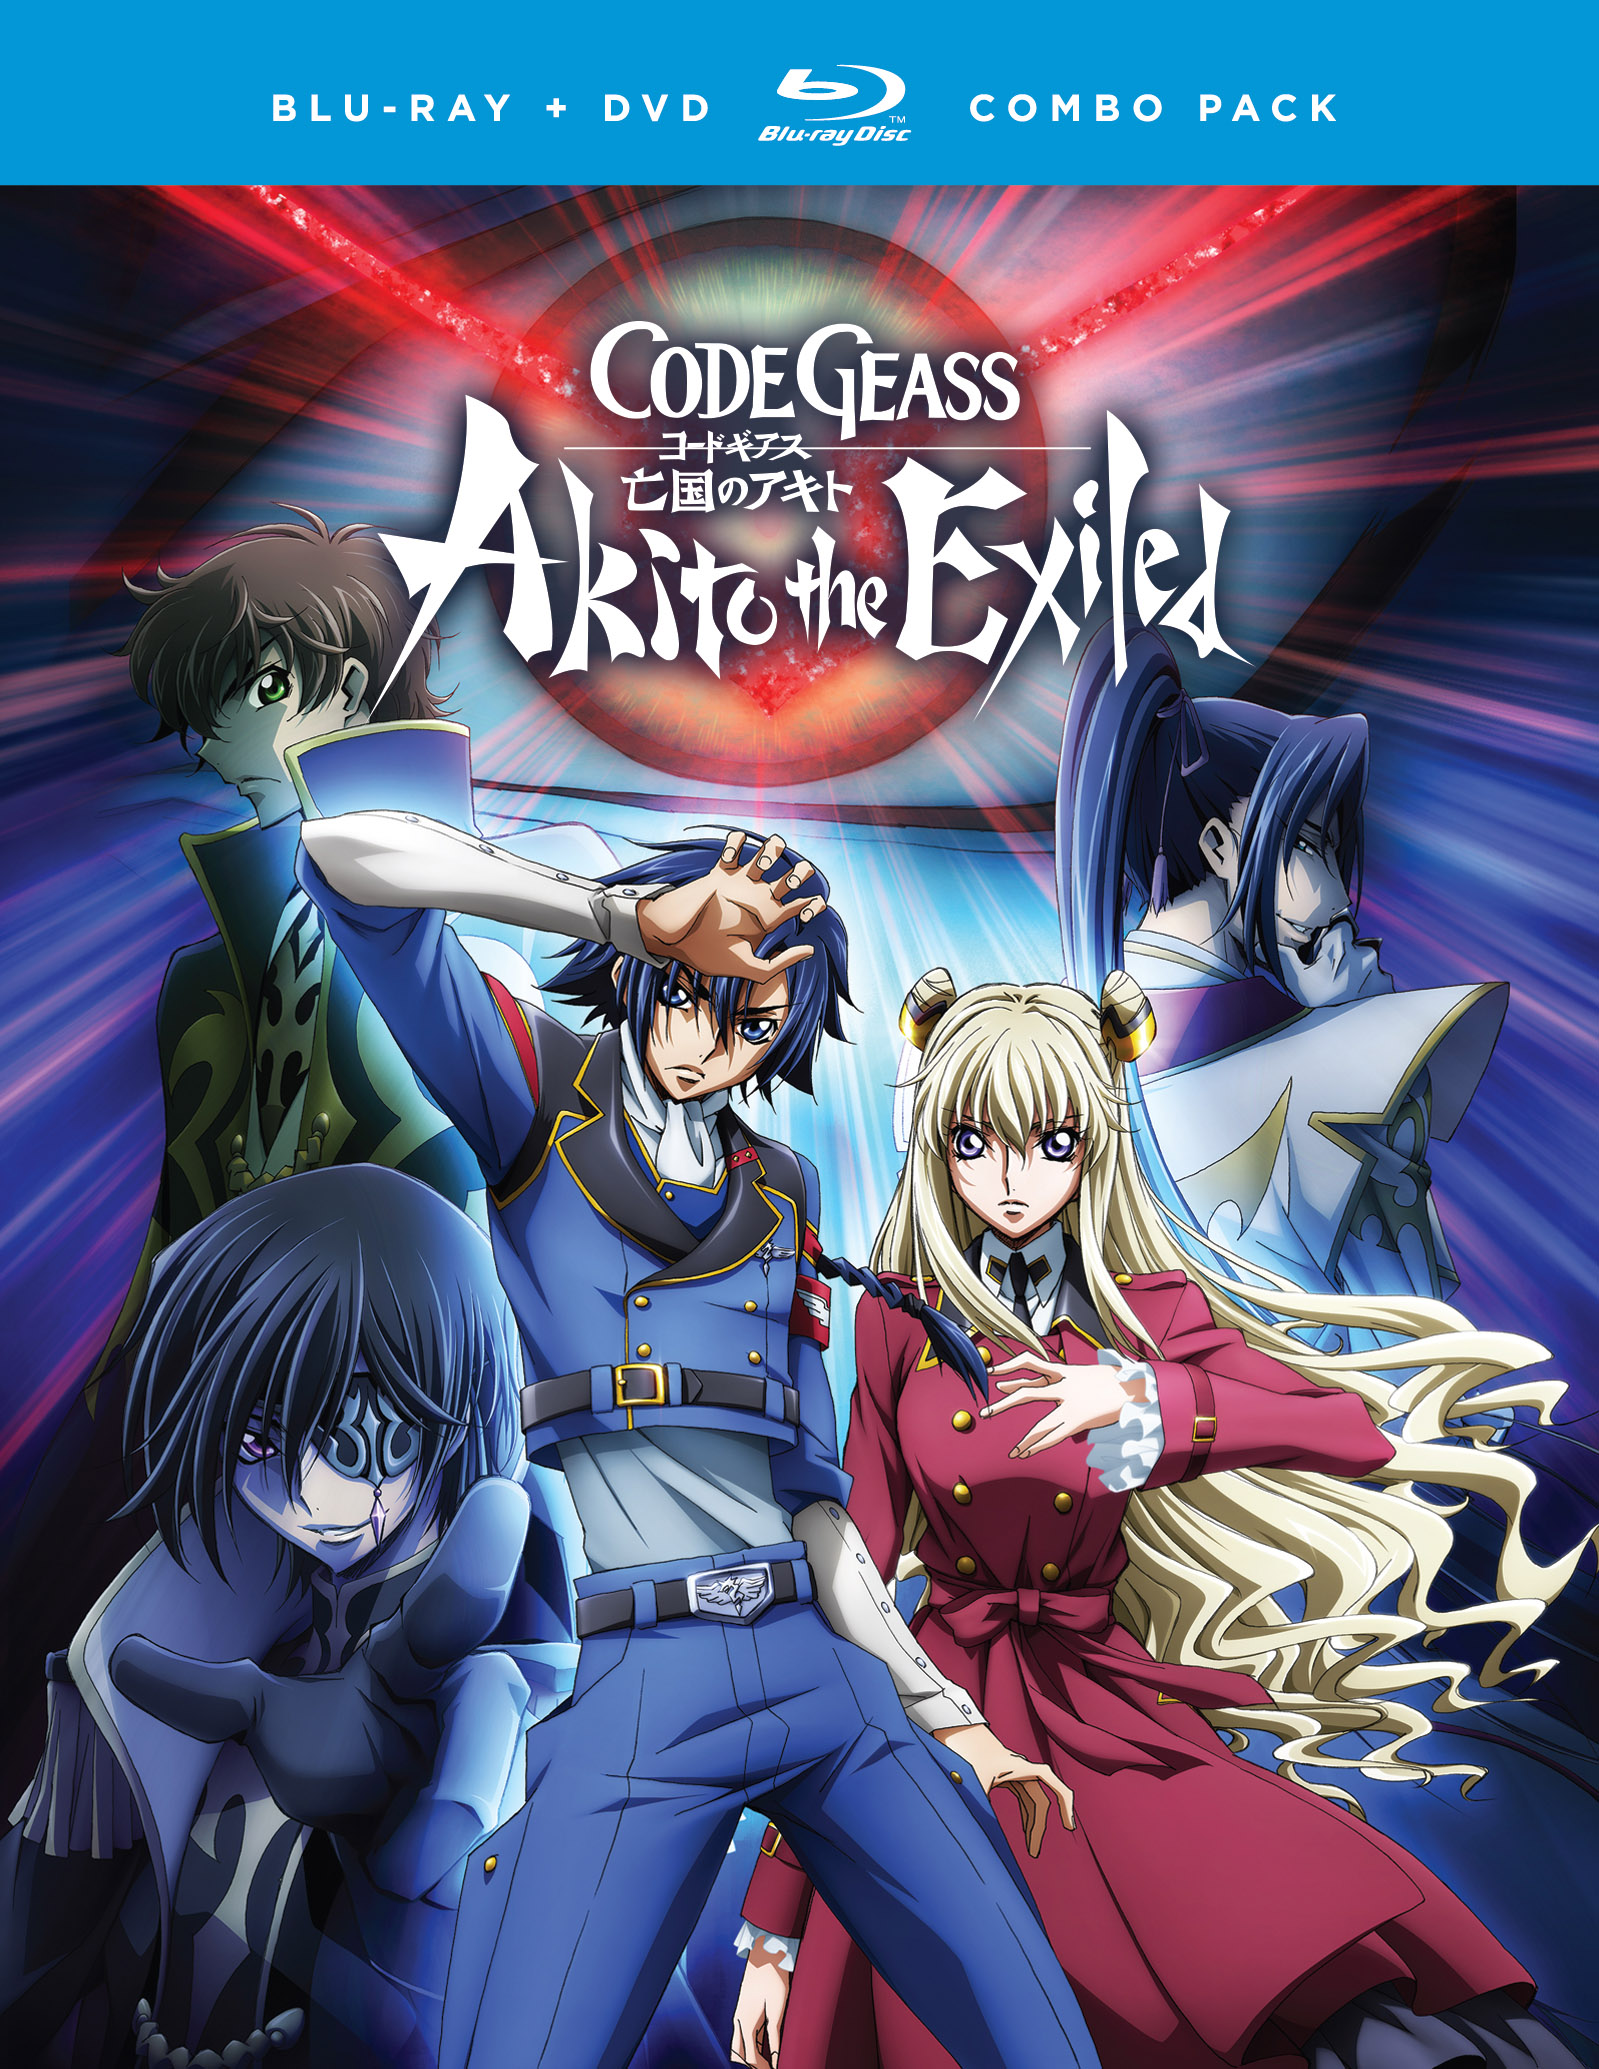 Code Geass Akito the Exiled Blu-ray/DVD 704400073557